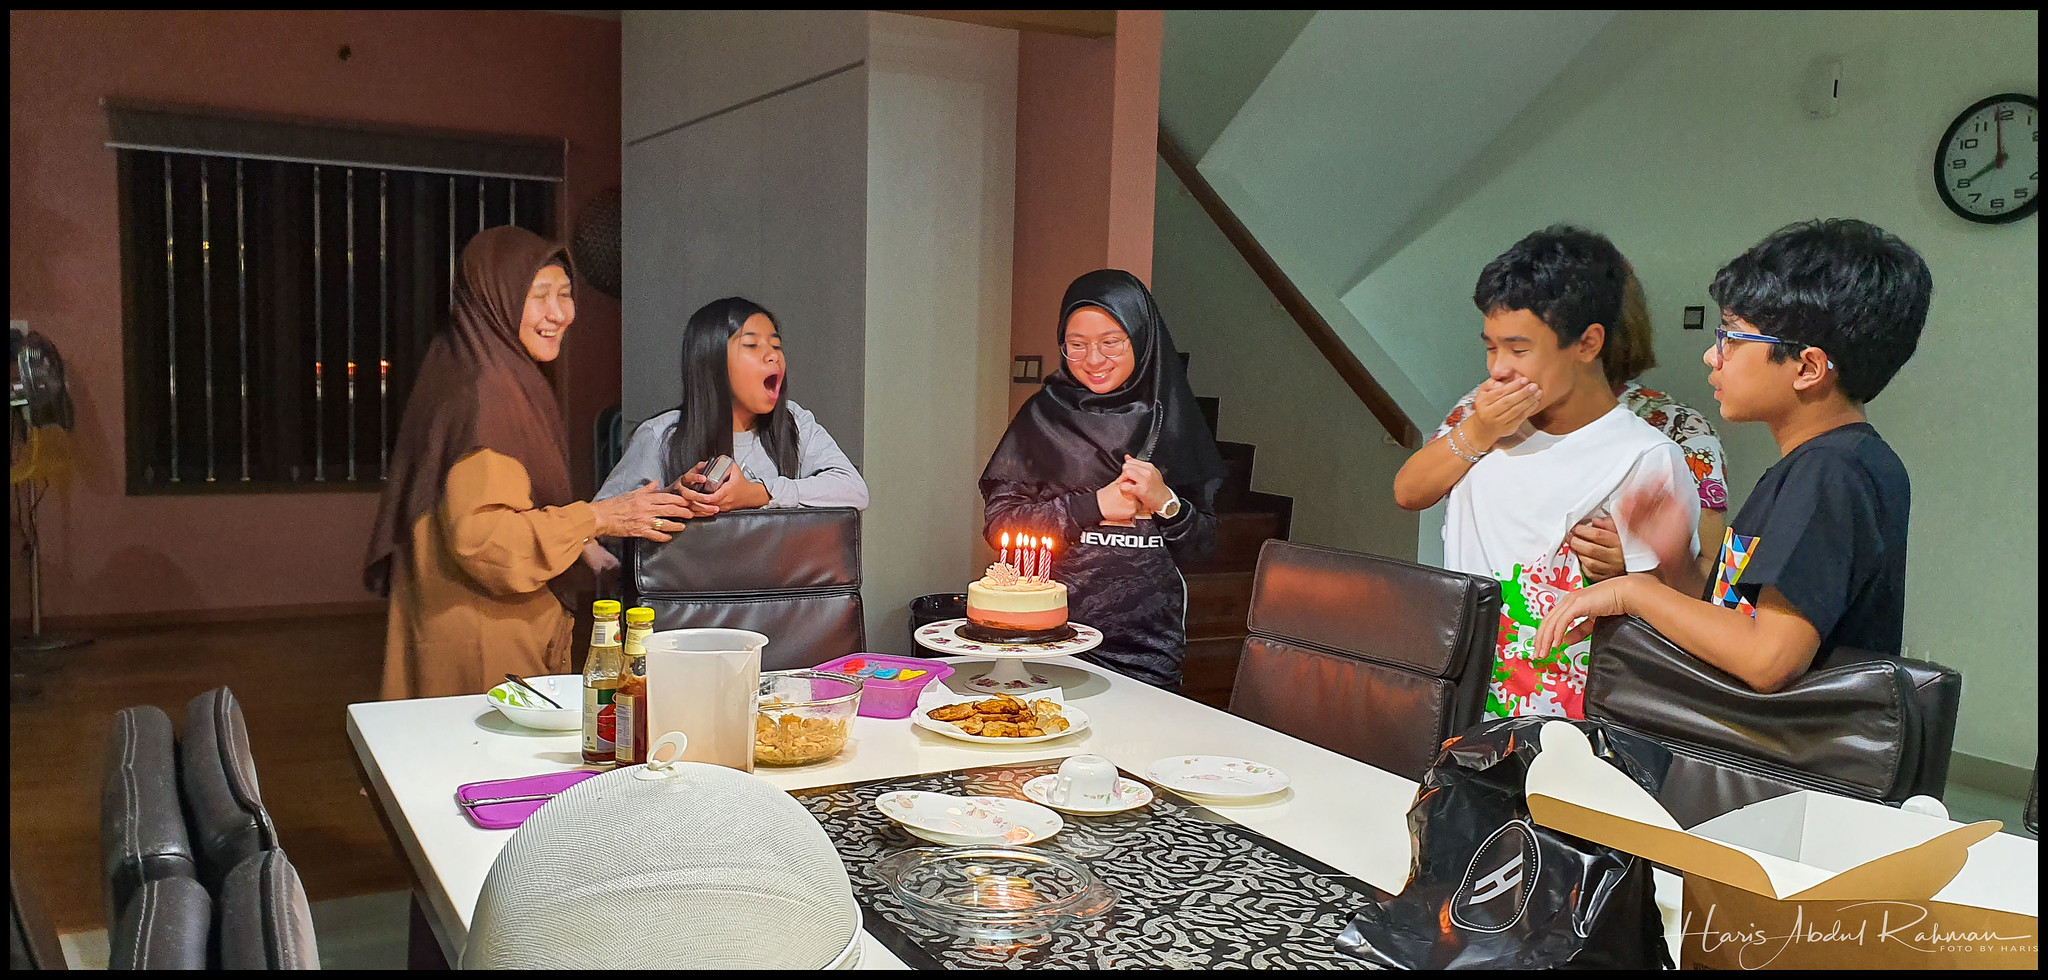 Celebrating Nana's birthday before leaving for the airport